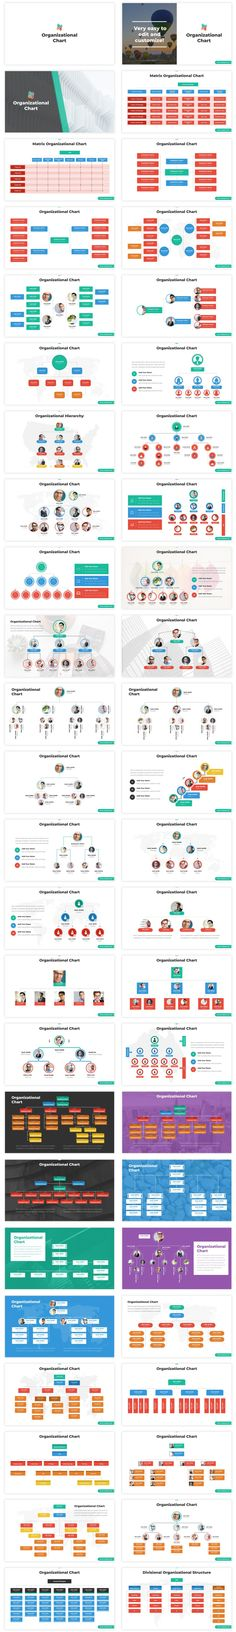 Save your time and buy this ready to use template that contains more than 100 modern and colorful slides with a great collection of org charts. Marketing Presentation, Business Presentation Templates, Presentation Layout, Business Templates, Powerpoint Design Templates, Keynote Template, Keynote Design, Organizational Chart, Infographic Templates